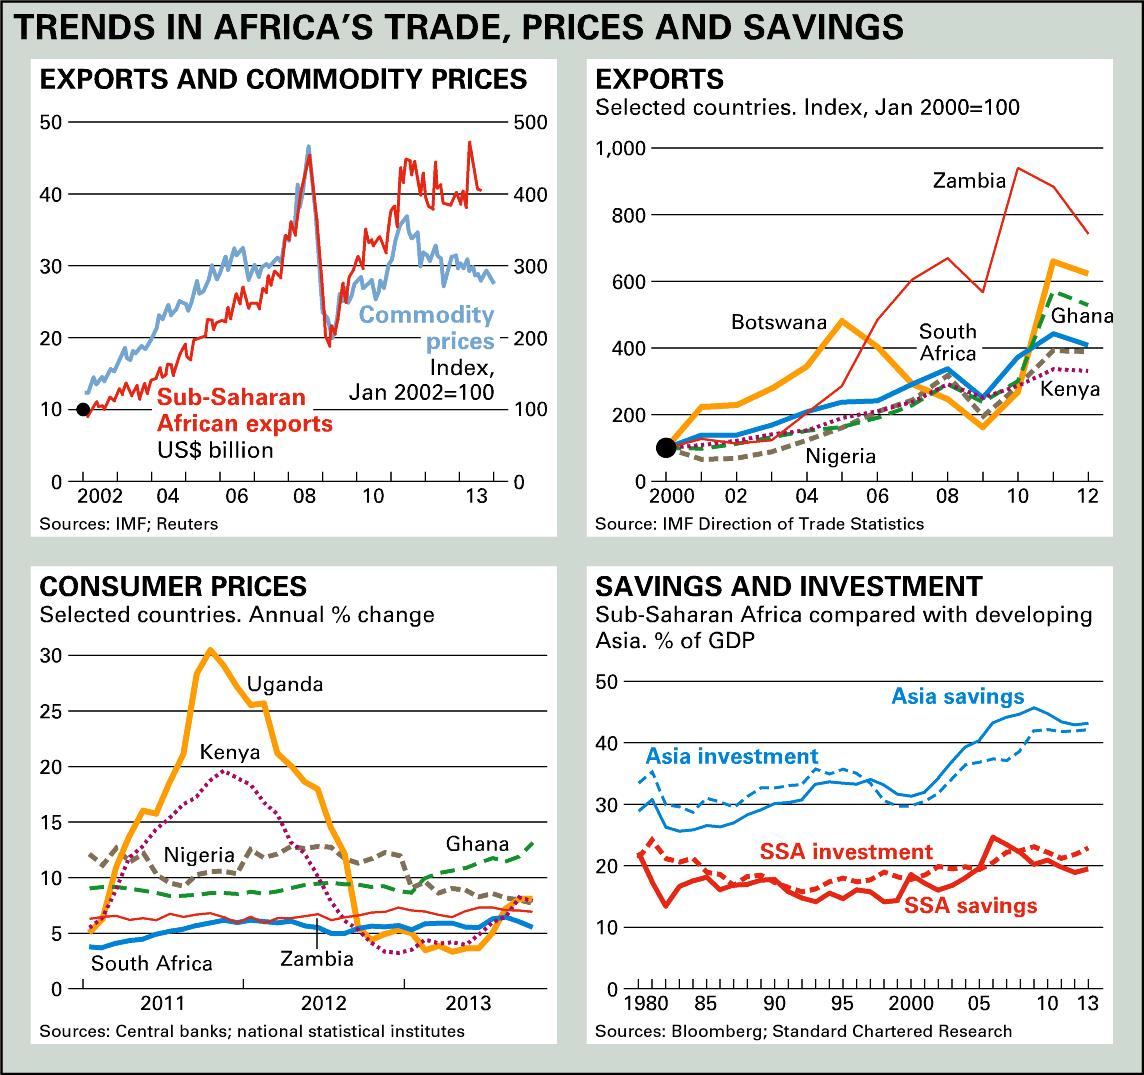 Trends in Africa's trade, prices and savings